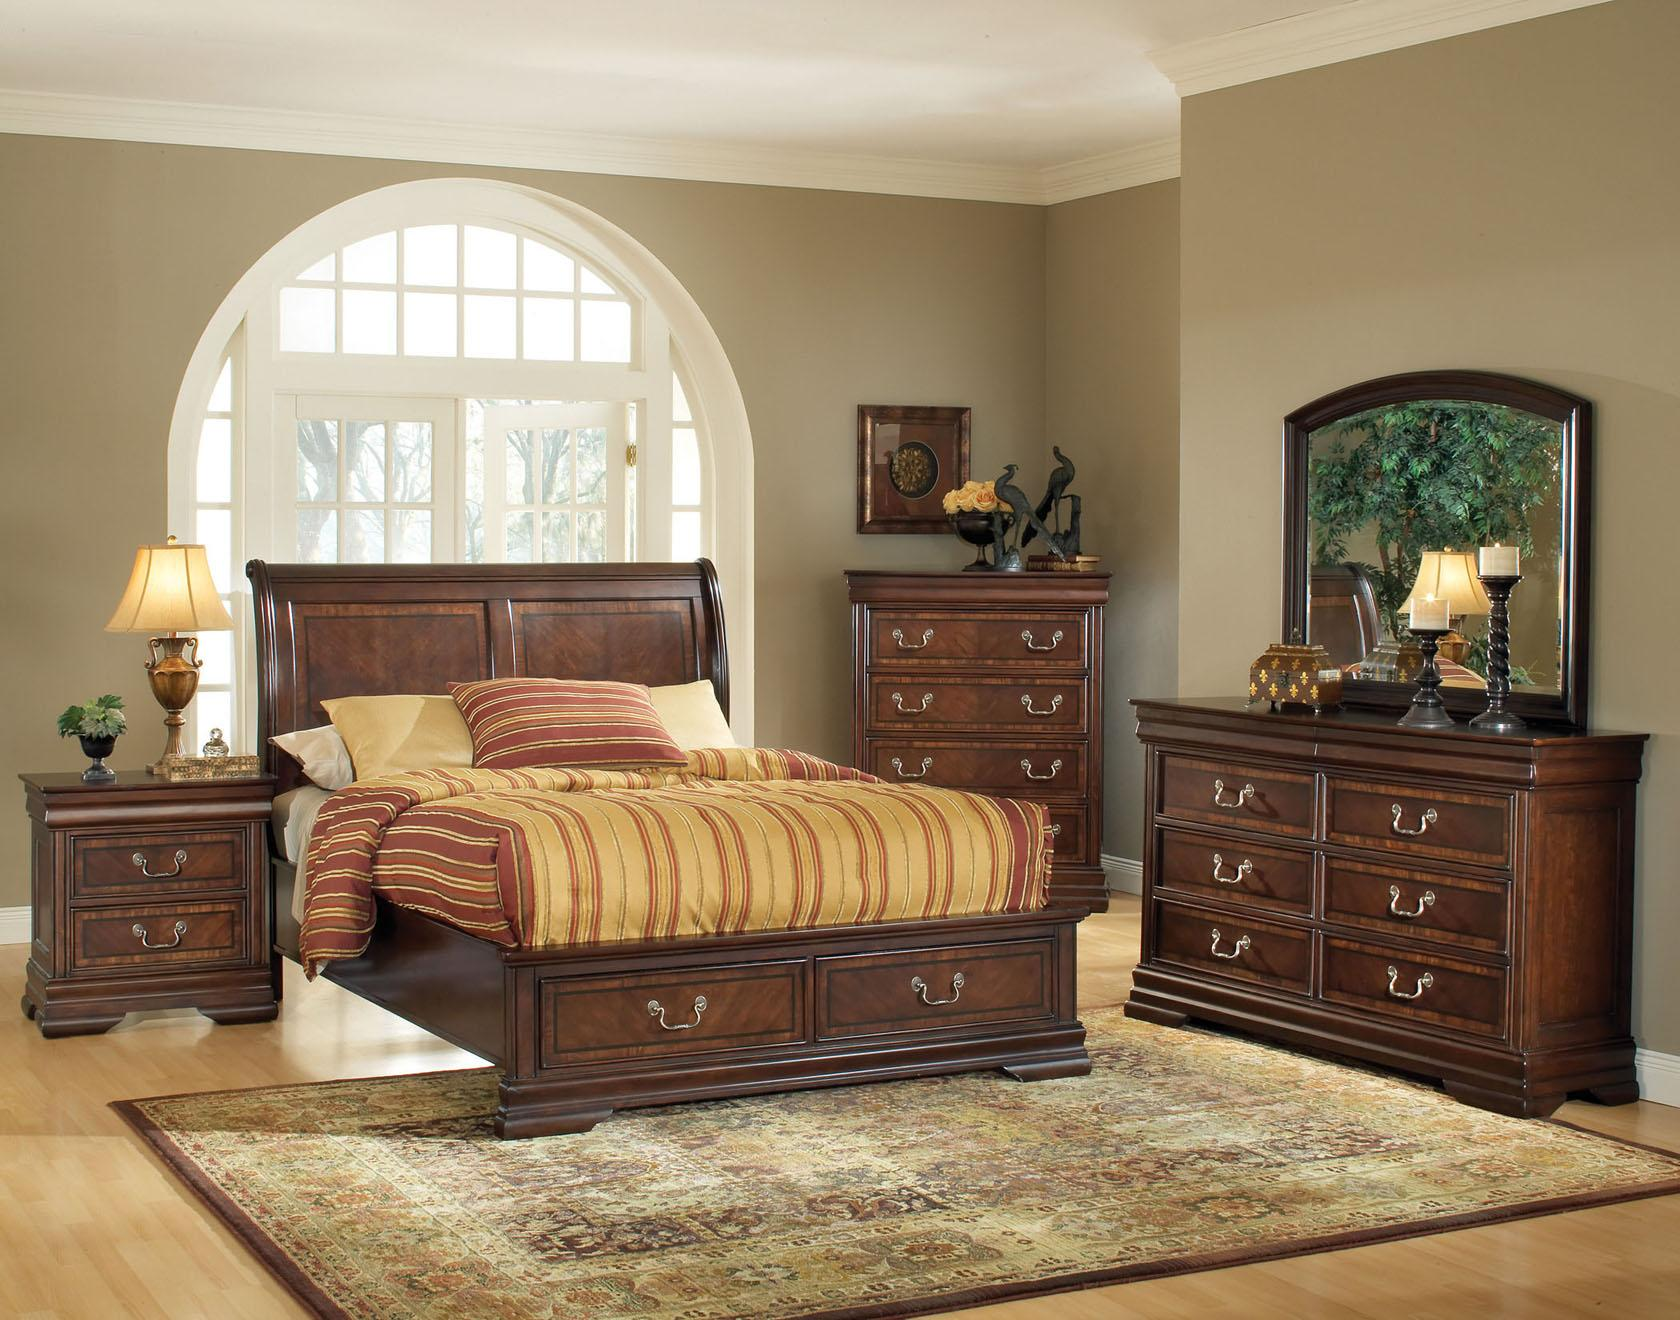 Acme Furniture Hennessy Queen Bed Bedroom Group - Item Number: 19450Q-HB+19450Q-FB+50Q-RLS+55+54